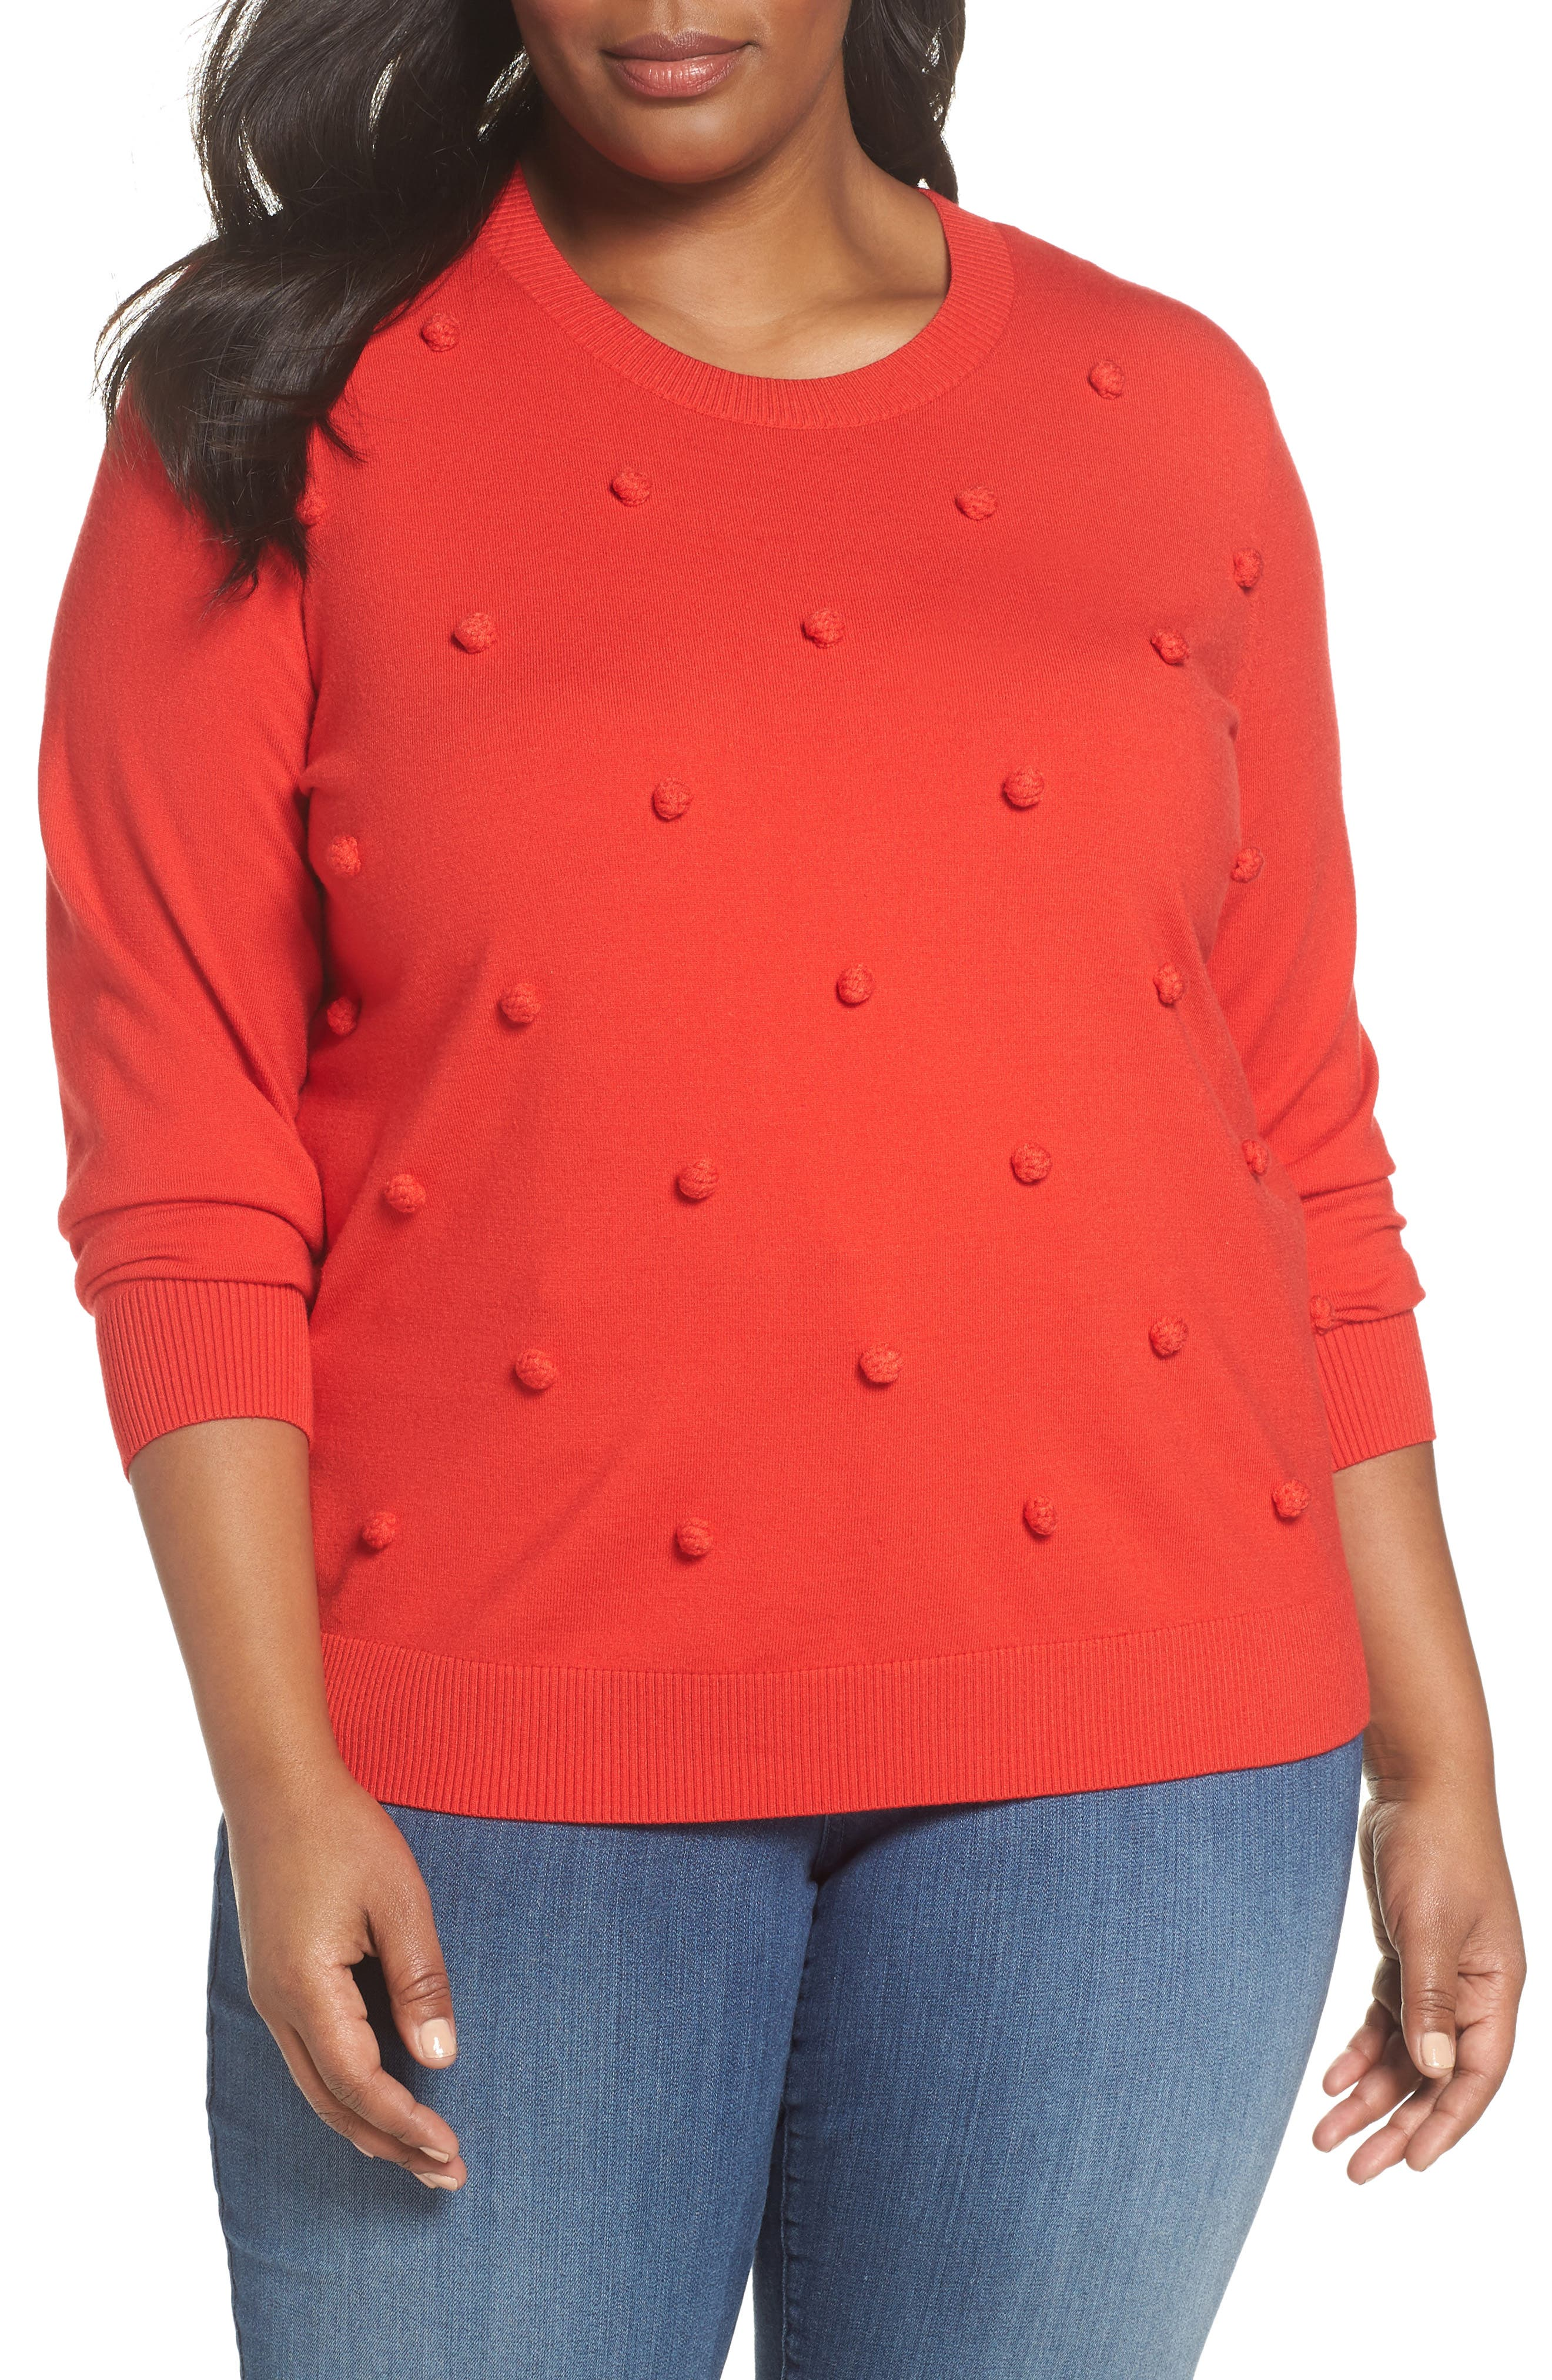 Popcorn Stitch Sweater,                             Main thumbnail 1, color,                             RED TOMATO